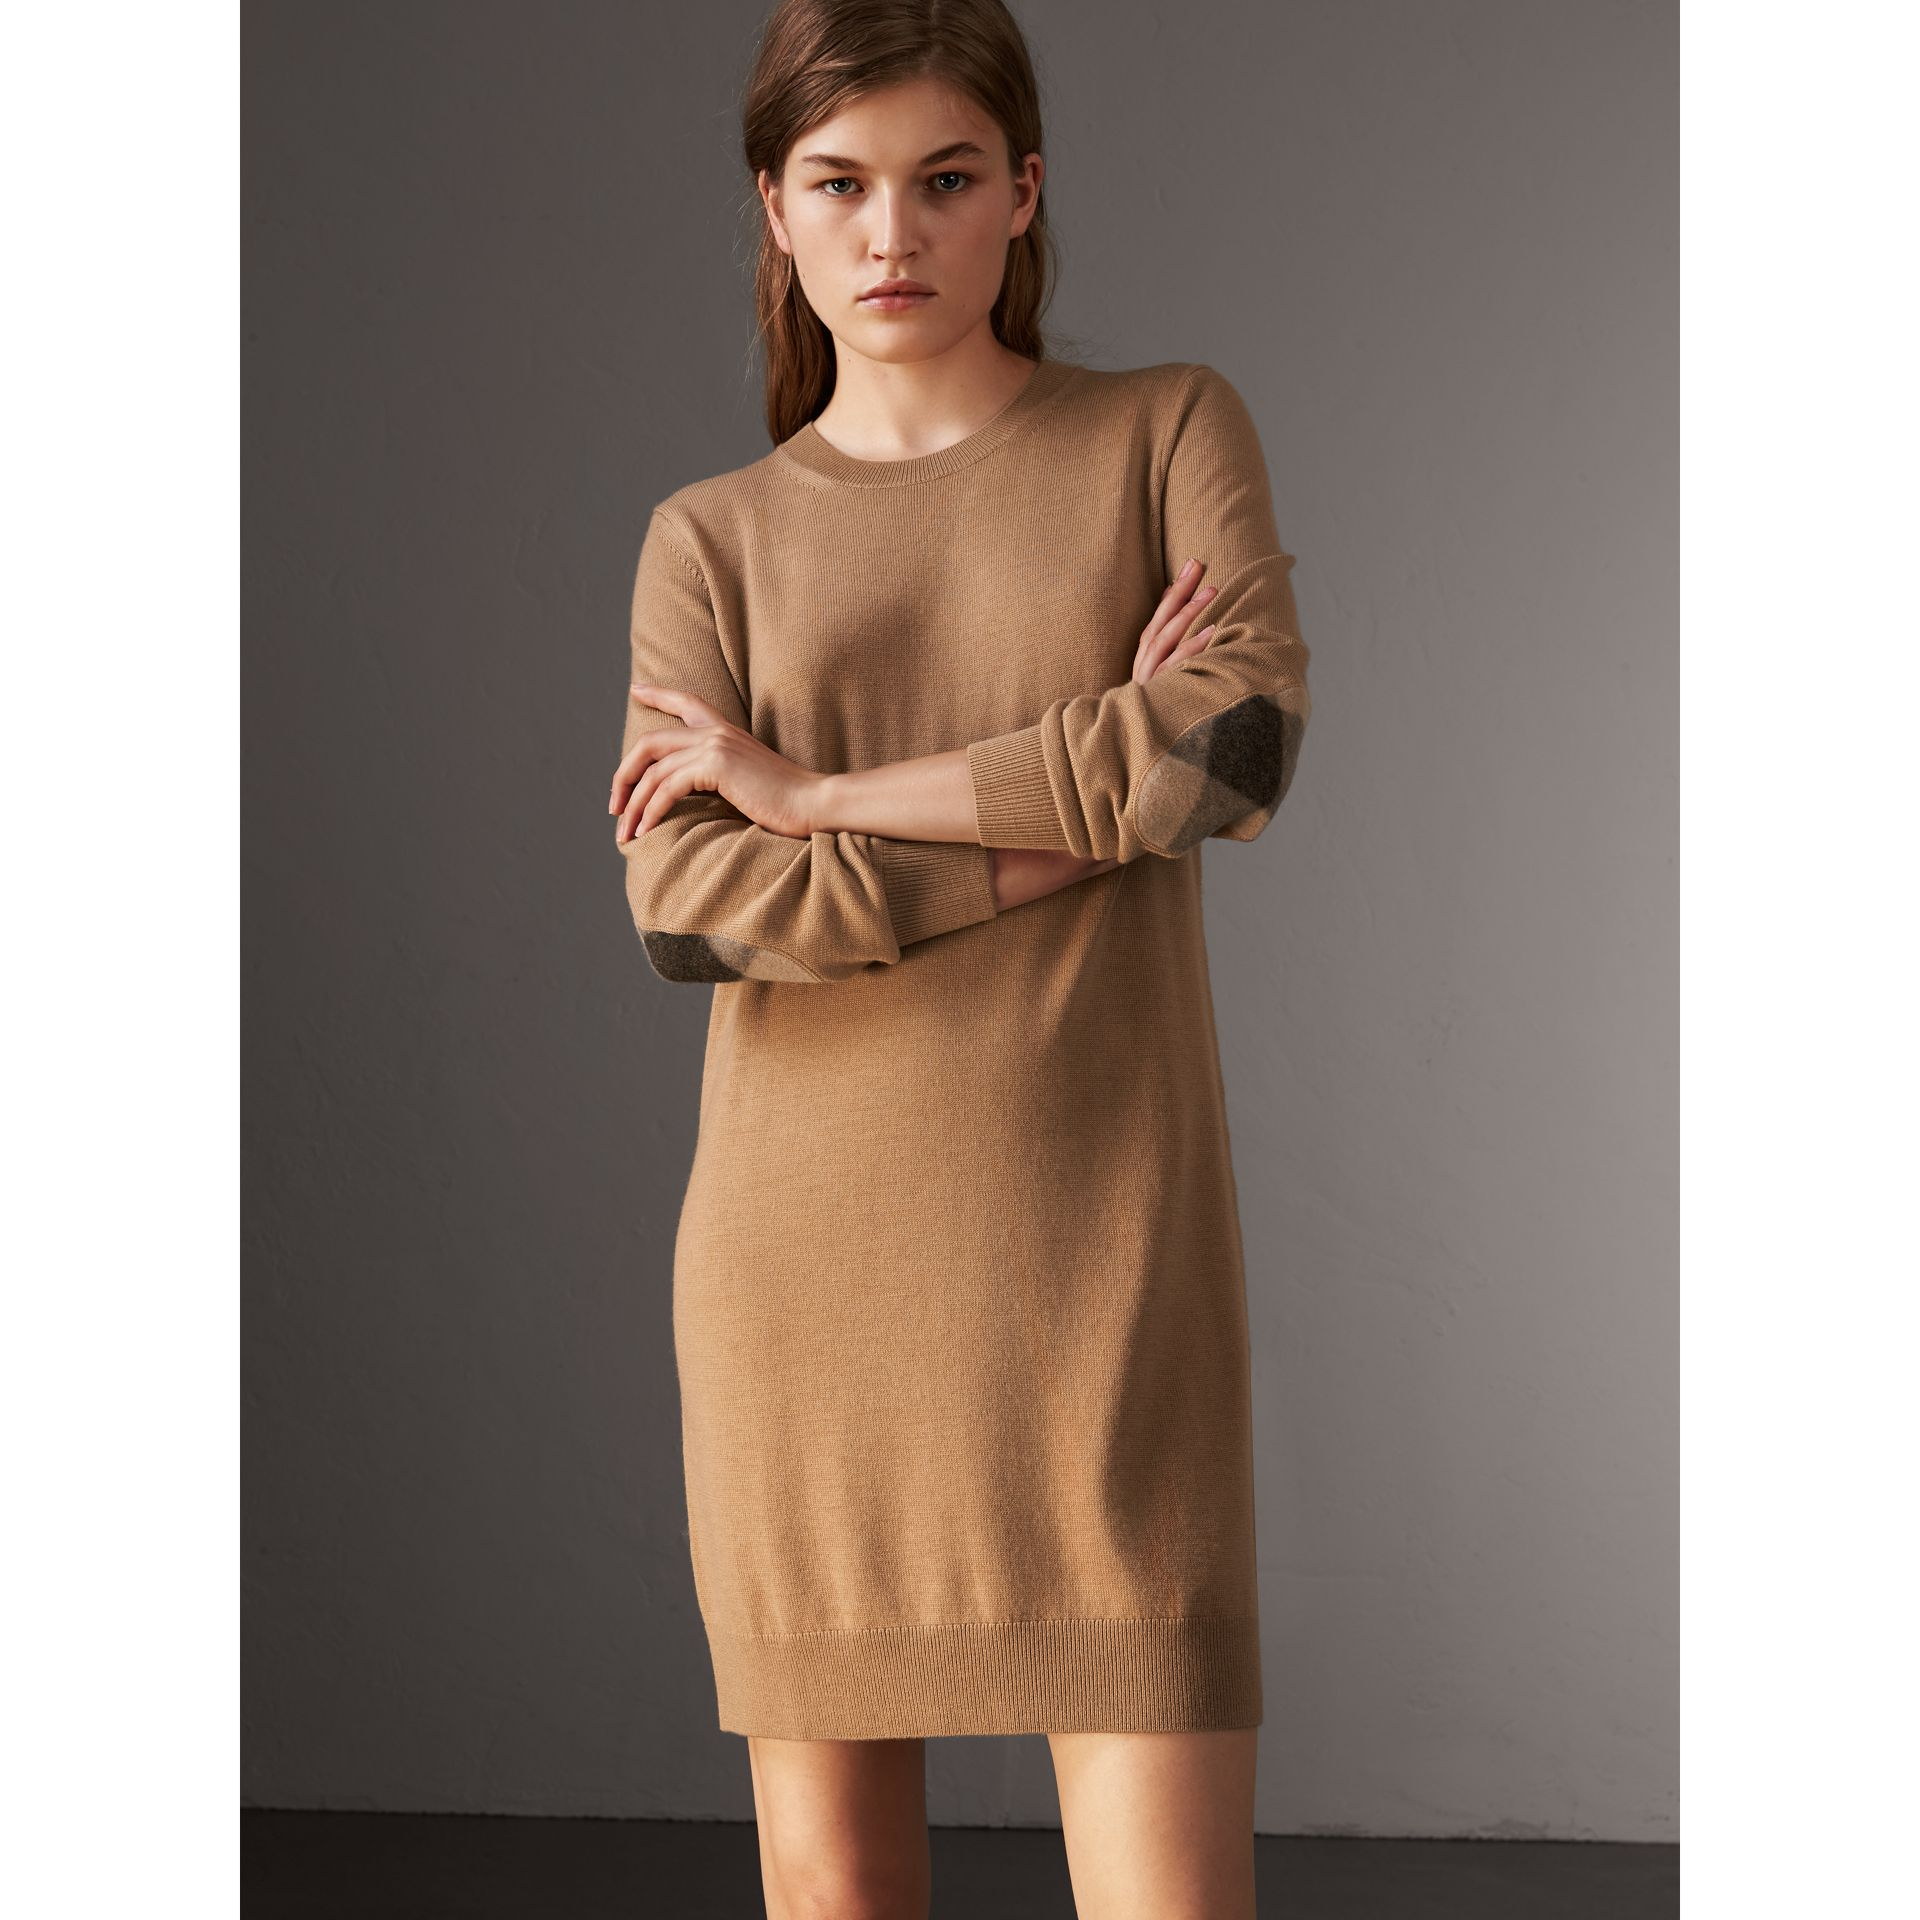 Check Elbow Detail Merino Wool Sweater Dress in Camel - Women | Burberry United States - gallery image 1